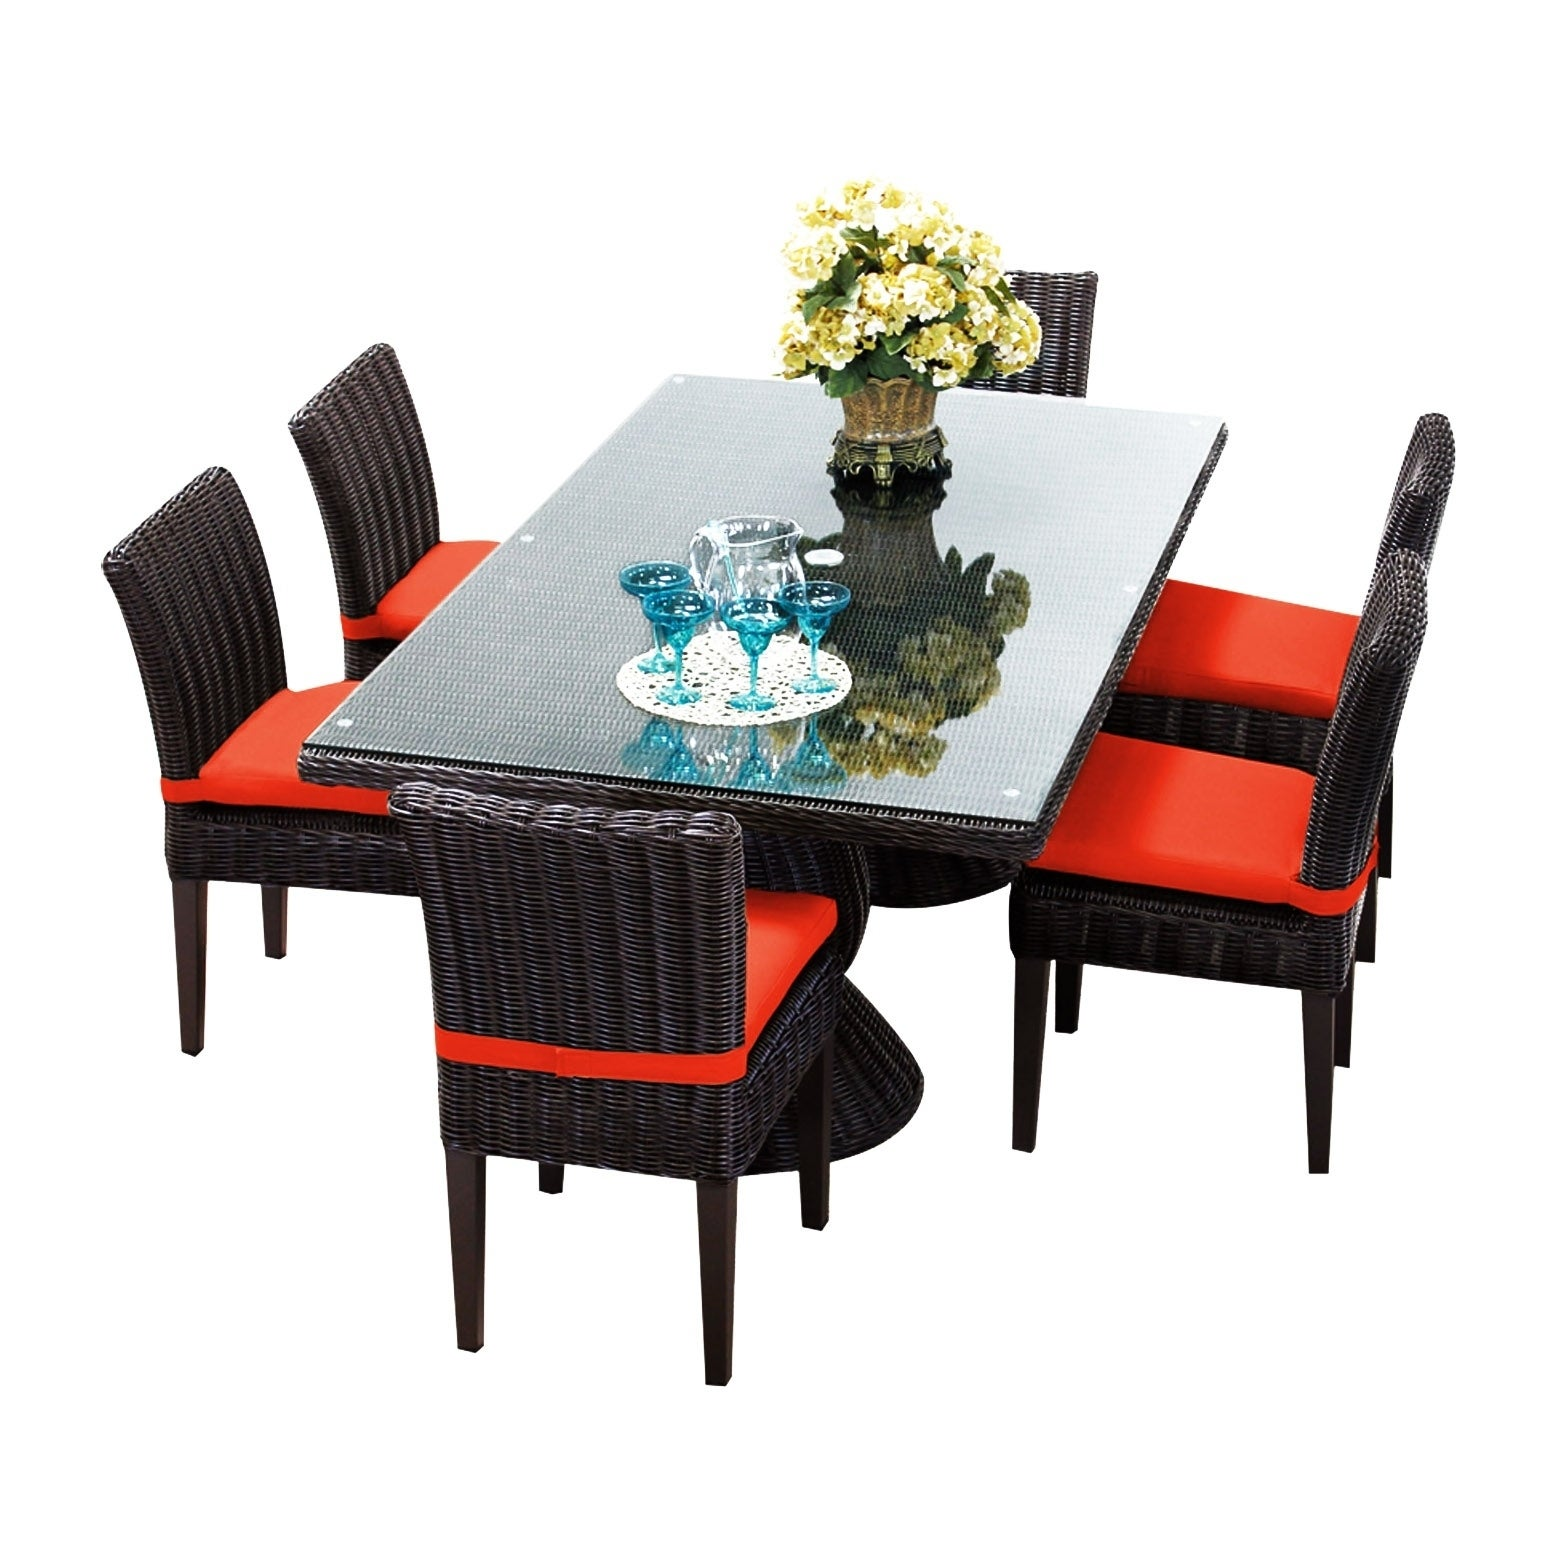 Calypso Oh0730 Outdoor Patio Wicker Dining Set With 6 Chairs Free Shipping Today 21163330